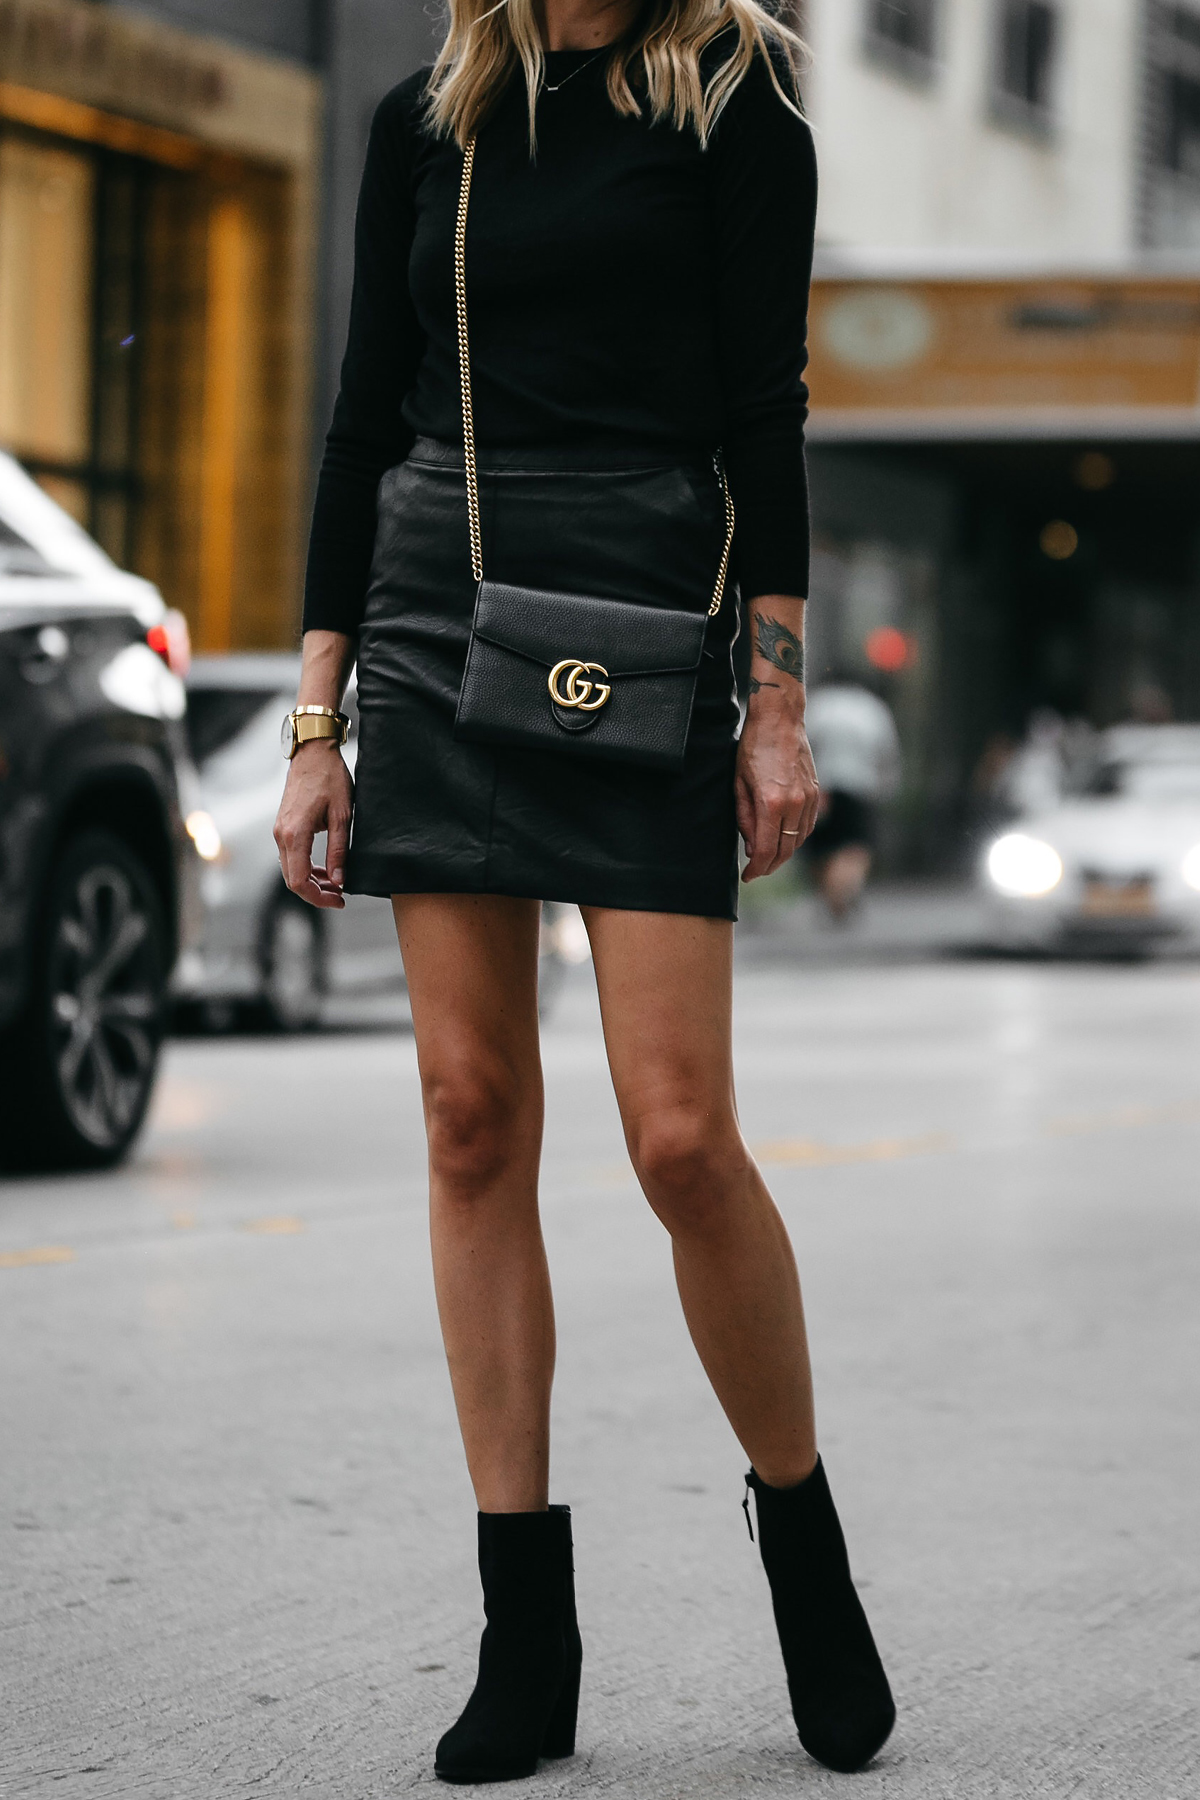 c936207e68 Club Monaco Black Sweater Topshop Black Leather Mini Skirt Outfit Gucci  Marmont Handbag Stuart Weitzman Black